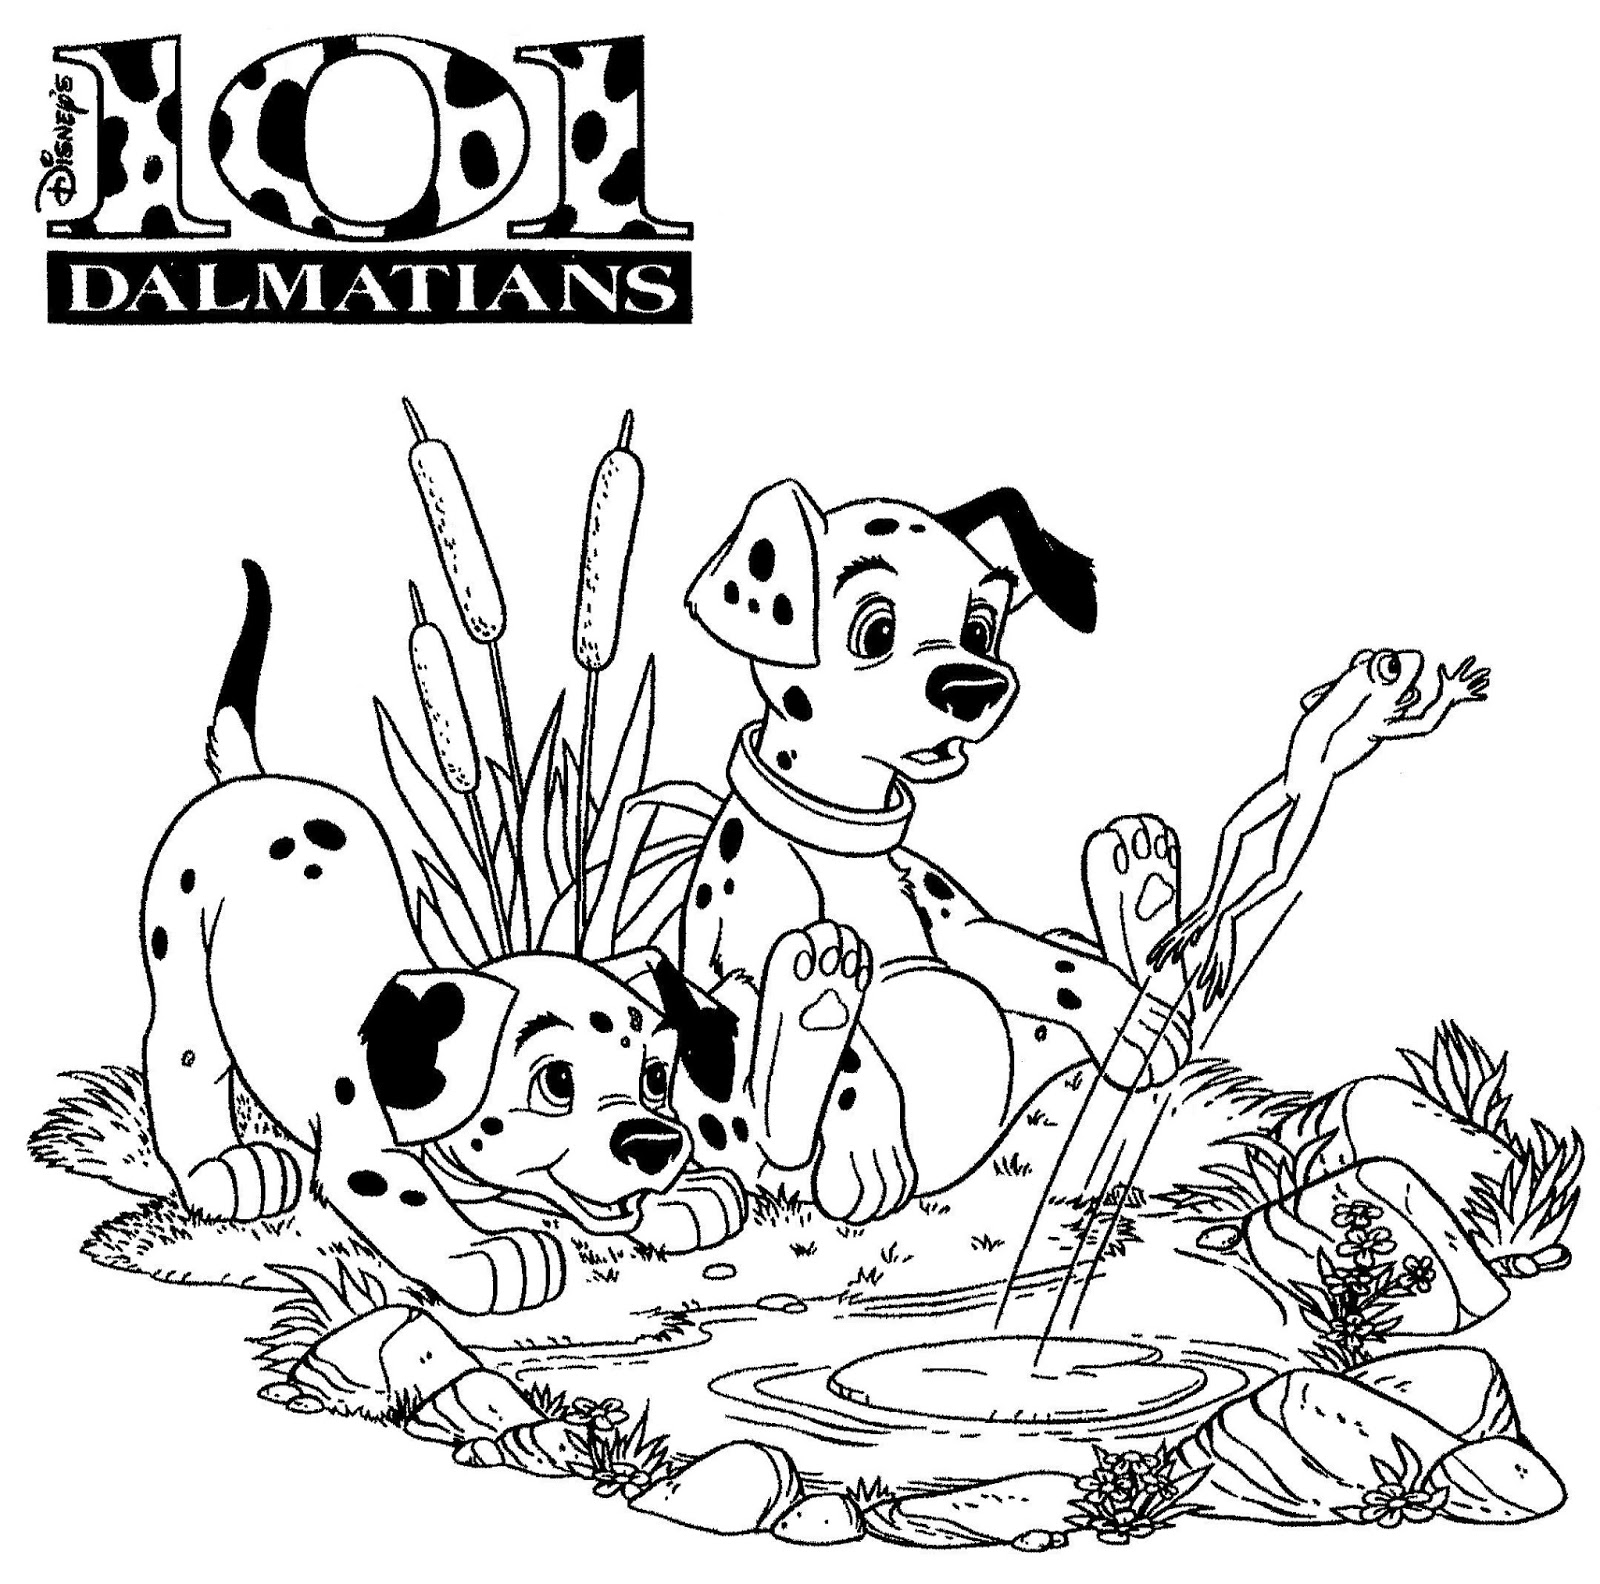 Mostly Paper Dolls Too!: 101 DALMATIANS Coloring Contest.